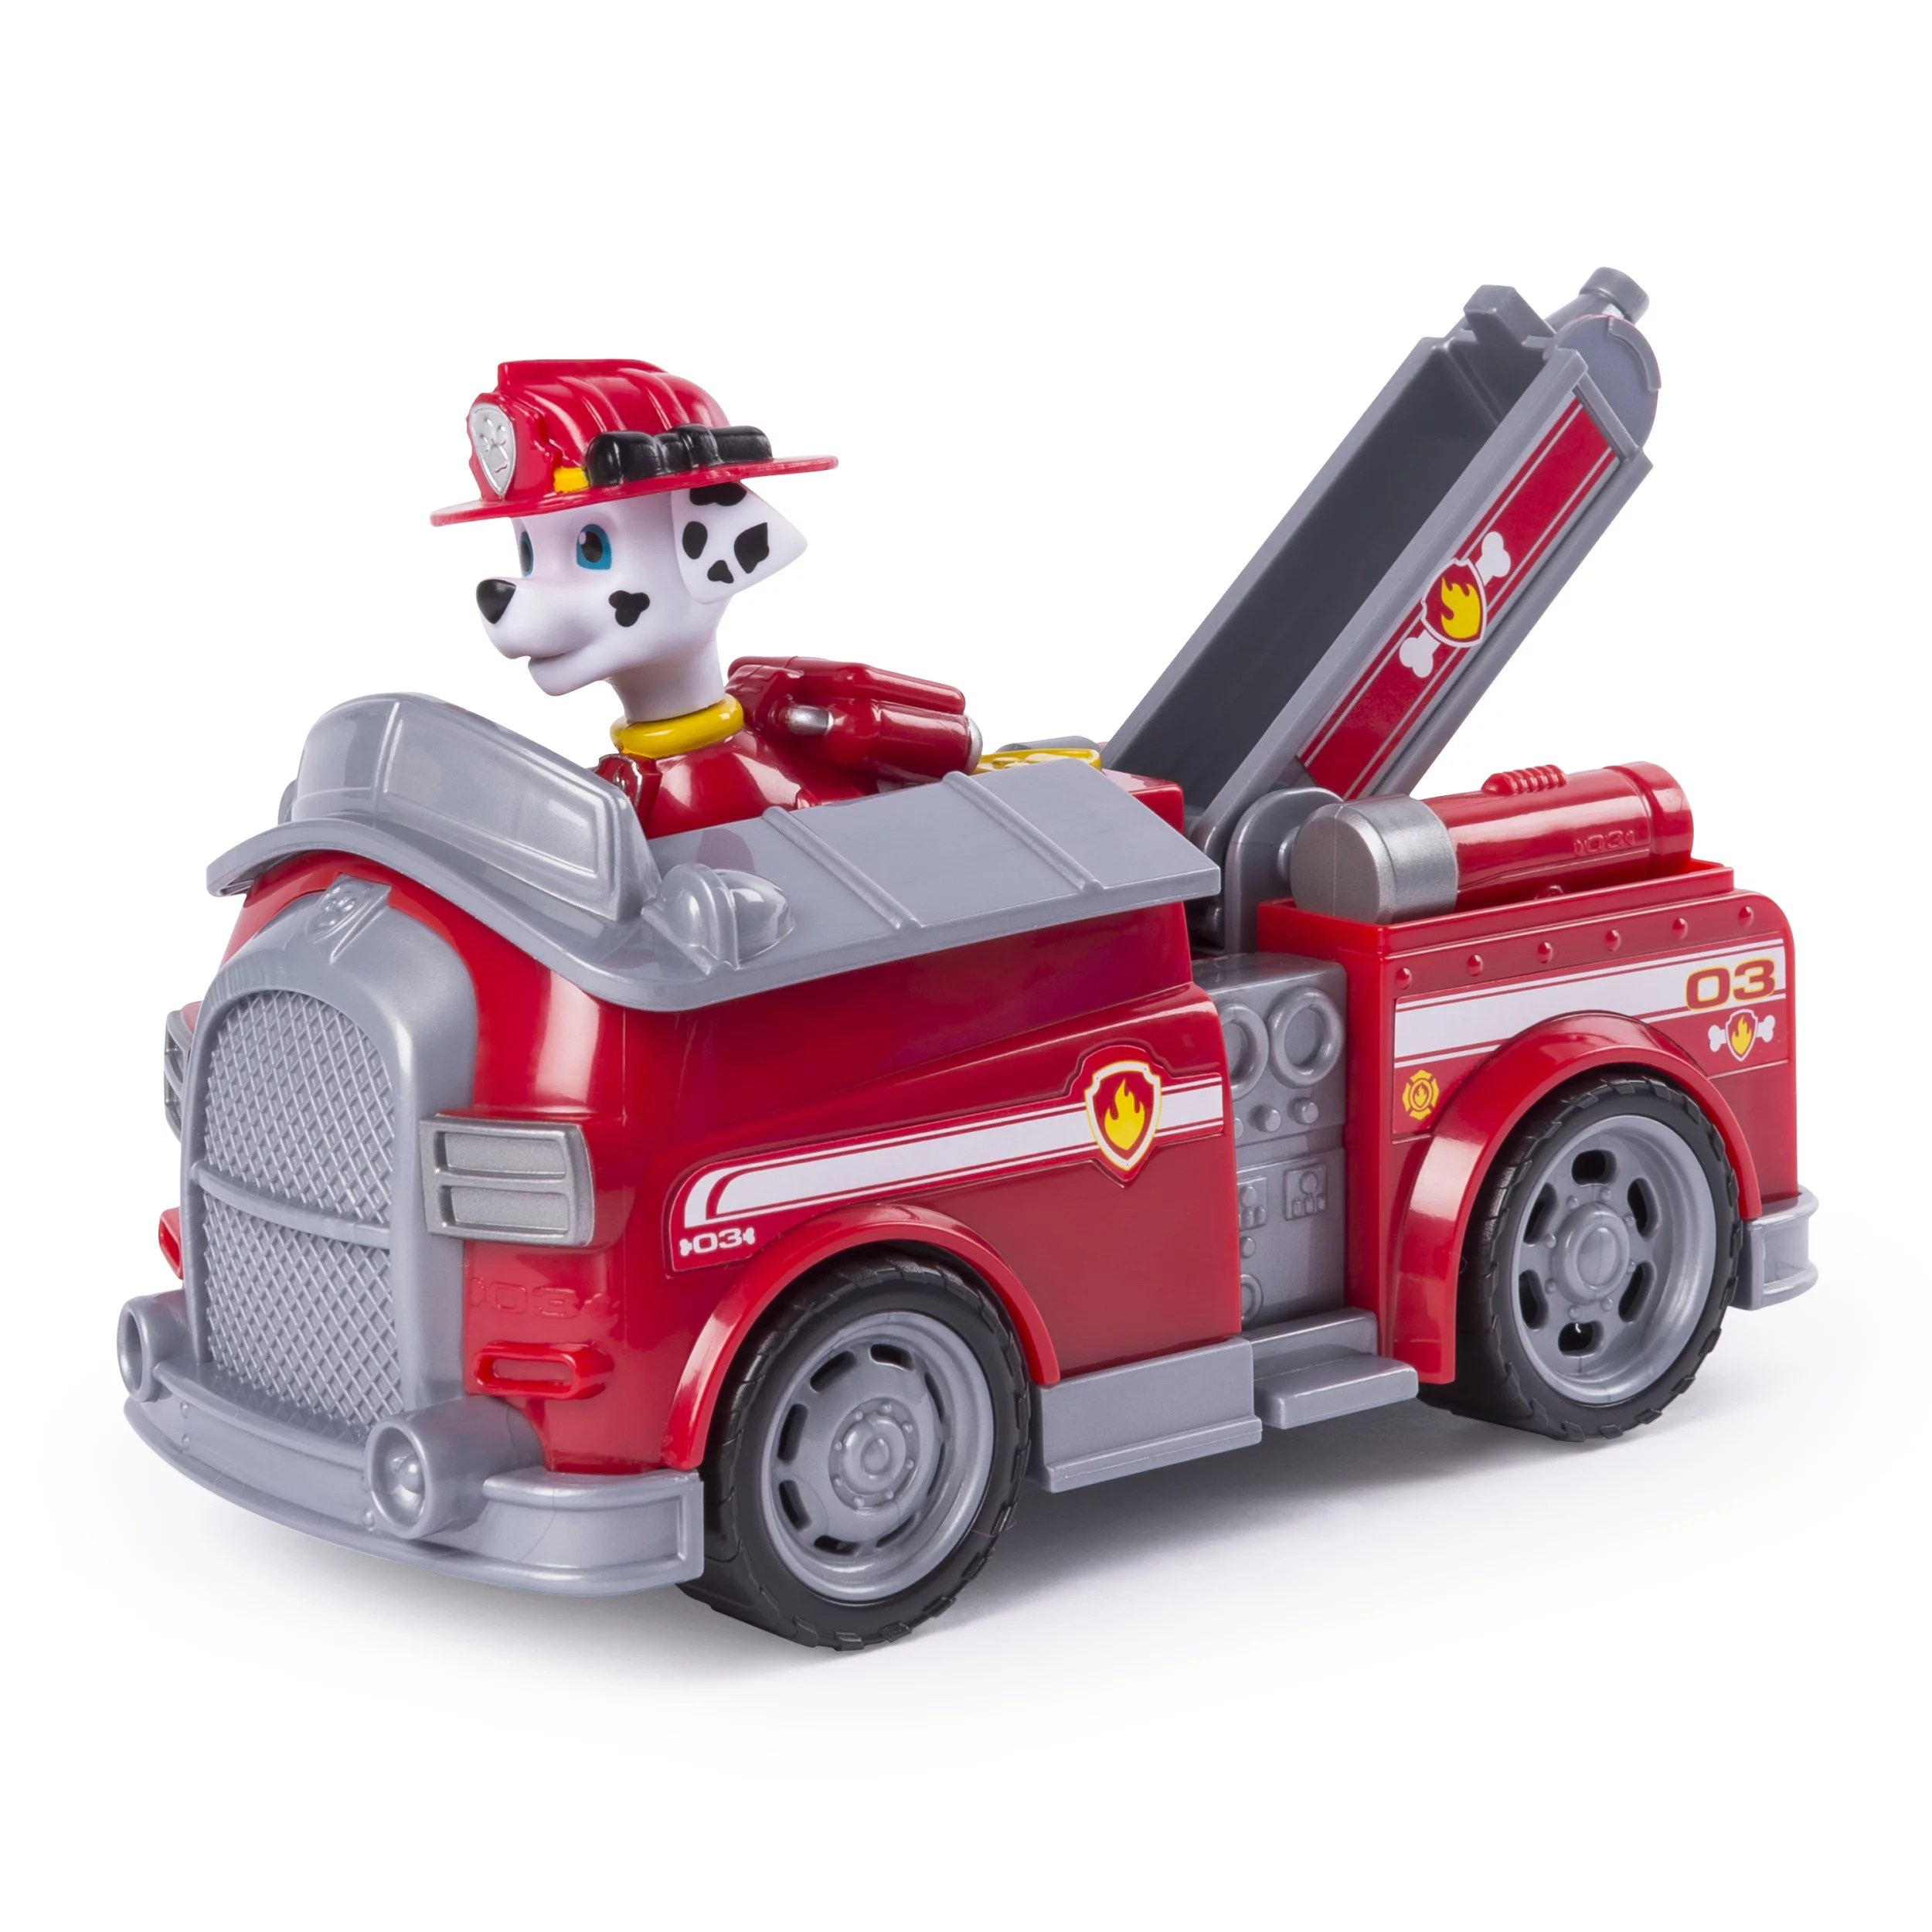 Toys Hobbies Paw Patrol Marshall S Transforming Fire Truck With Pop Out Water Cannons Figure Monalisa Tiles Com